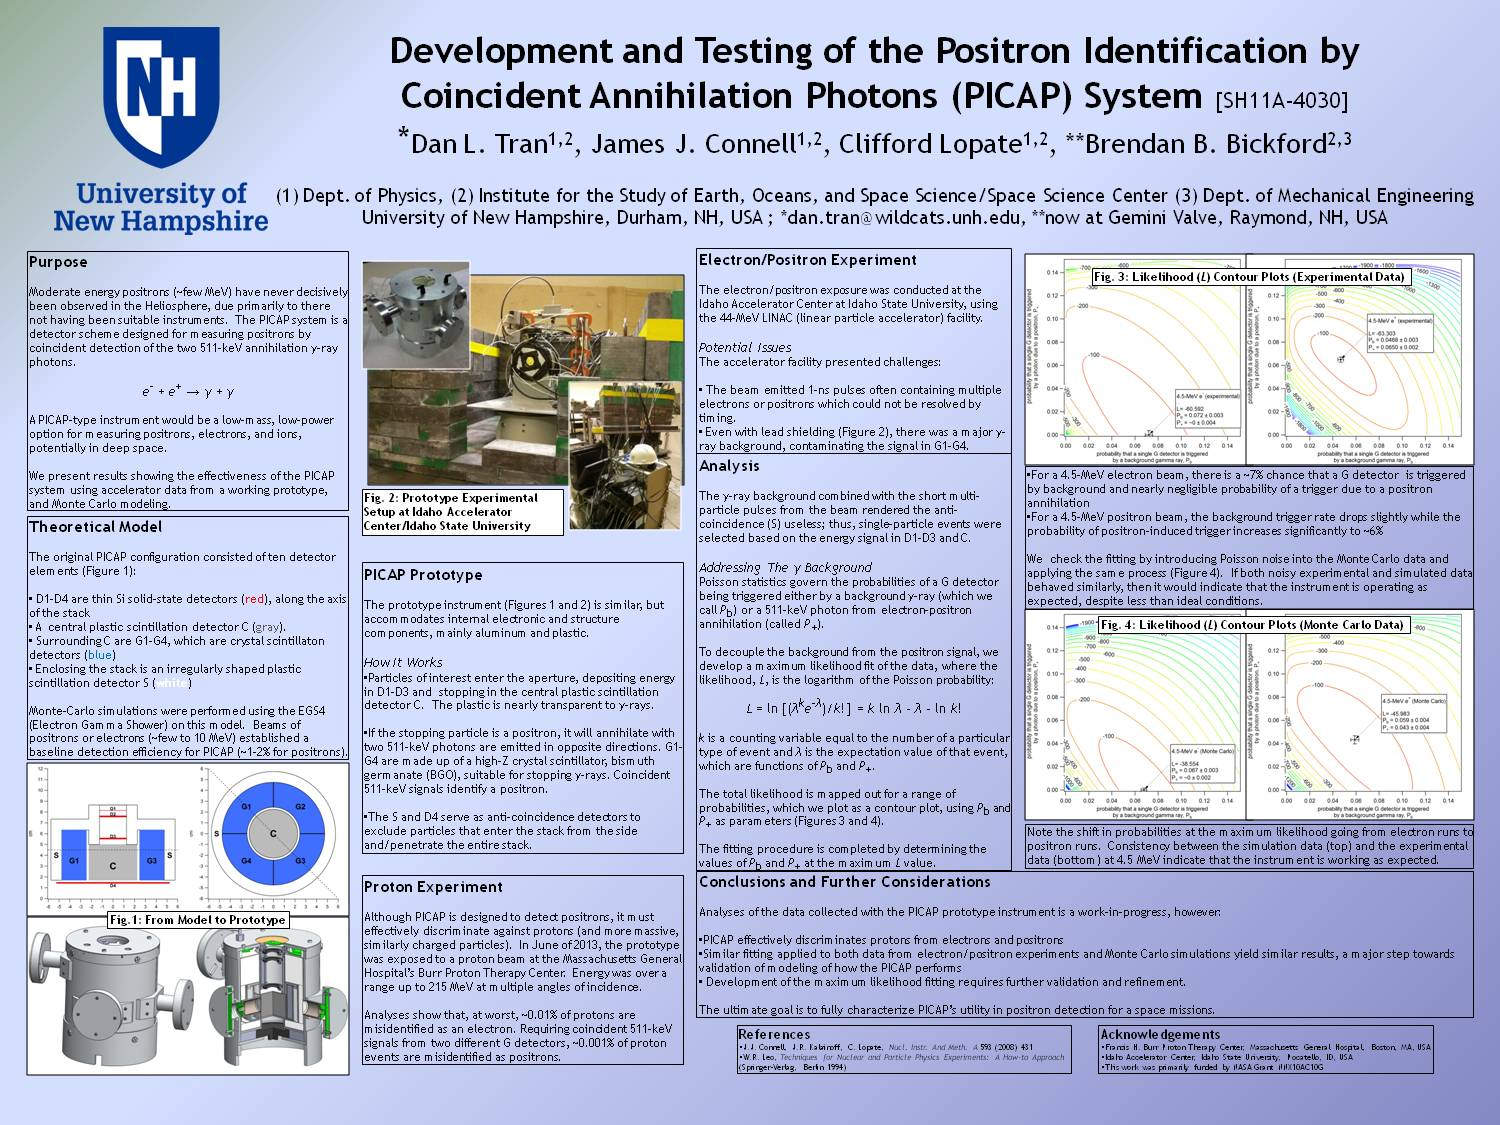 Development And Testing Of The Positron Identification By Coincident Annihilation Photons (Picap) System by dlr38